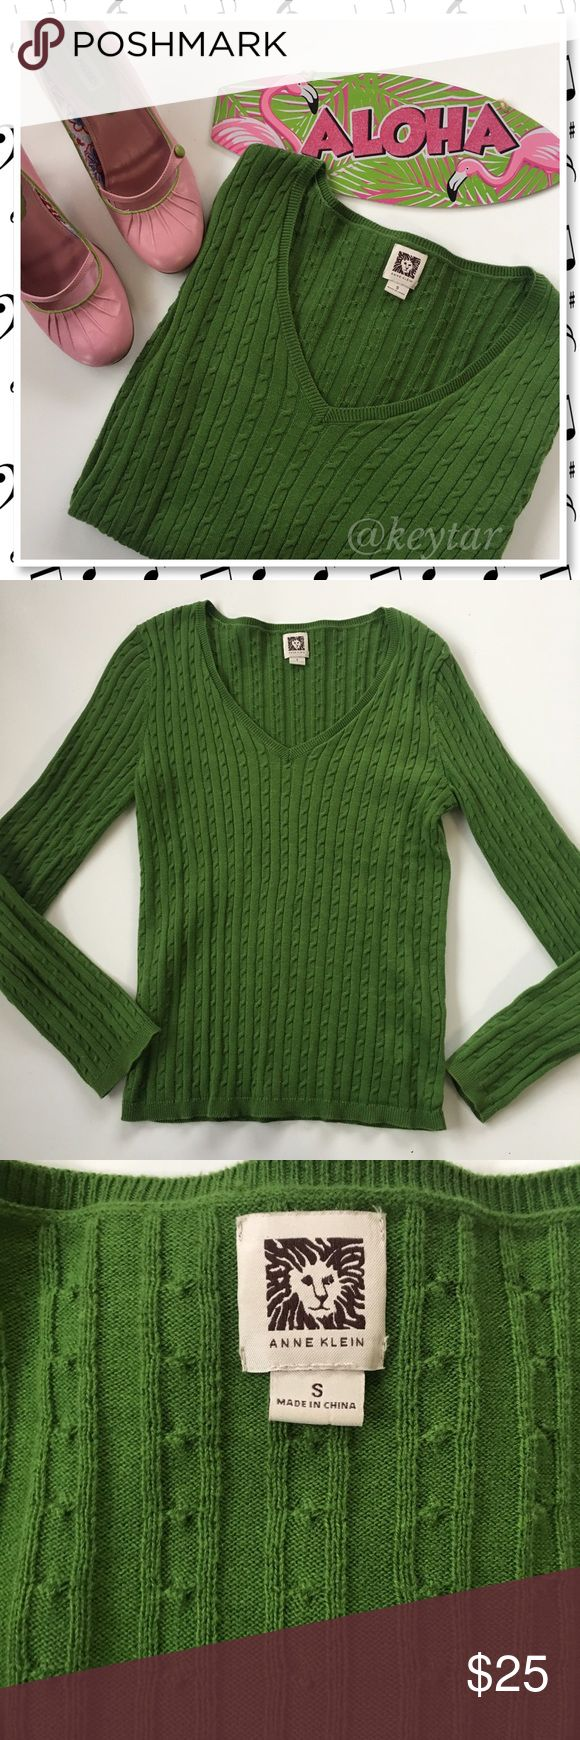 Kelly Green Cable Knit V Neck Sweater Classy Kelly green sweater from Anne Klein. Cable knit V neck. Add this easy pop of color to any outfit. Perfect for the office with black slacks or ponte pants or wear with your favorite straight leg jeans. ❌ Steve Madden Mary Janes sold separately.  ❌ trades ❌ lowballs 👍offer button  🌟Bundle 2 or more items and save 10%🌟 Anne Klein Sweaters V-Necks